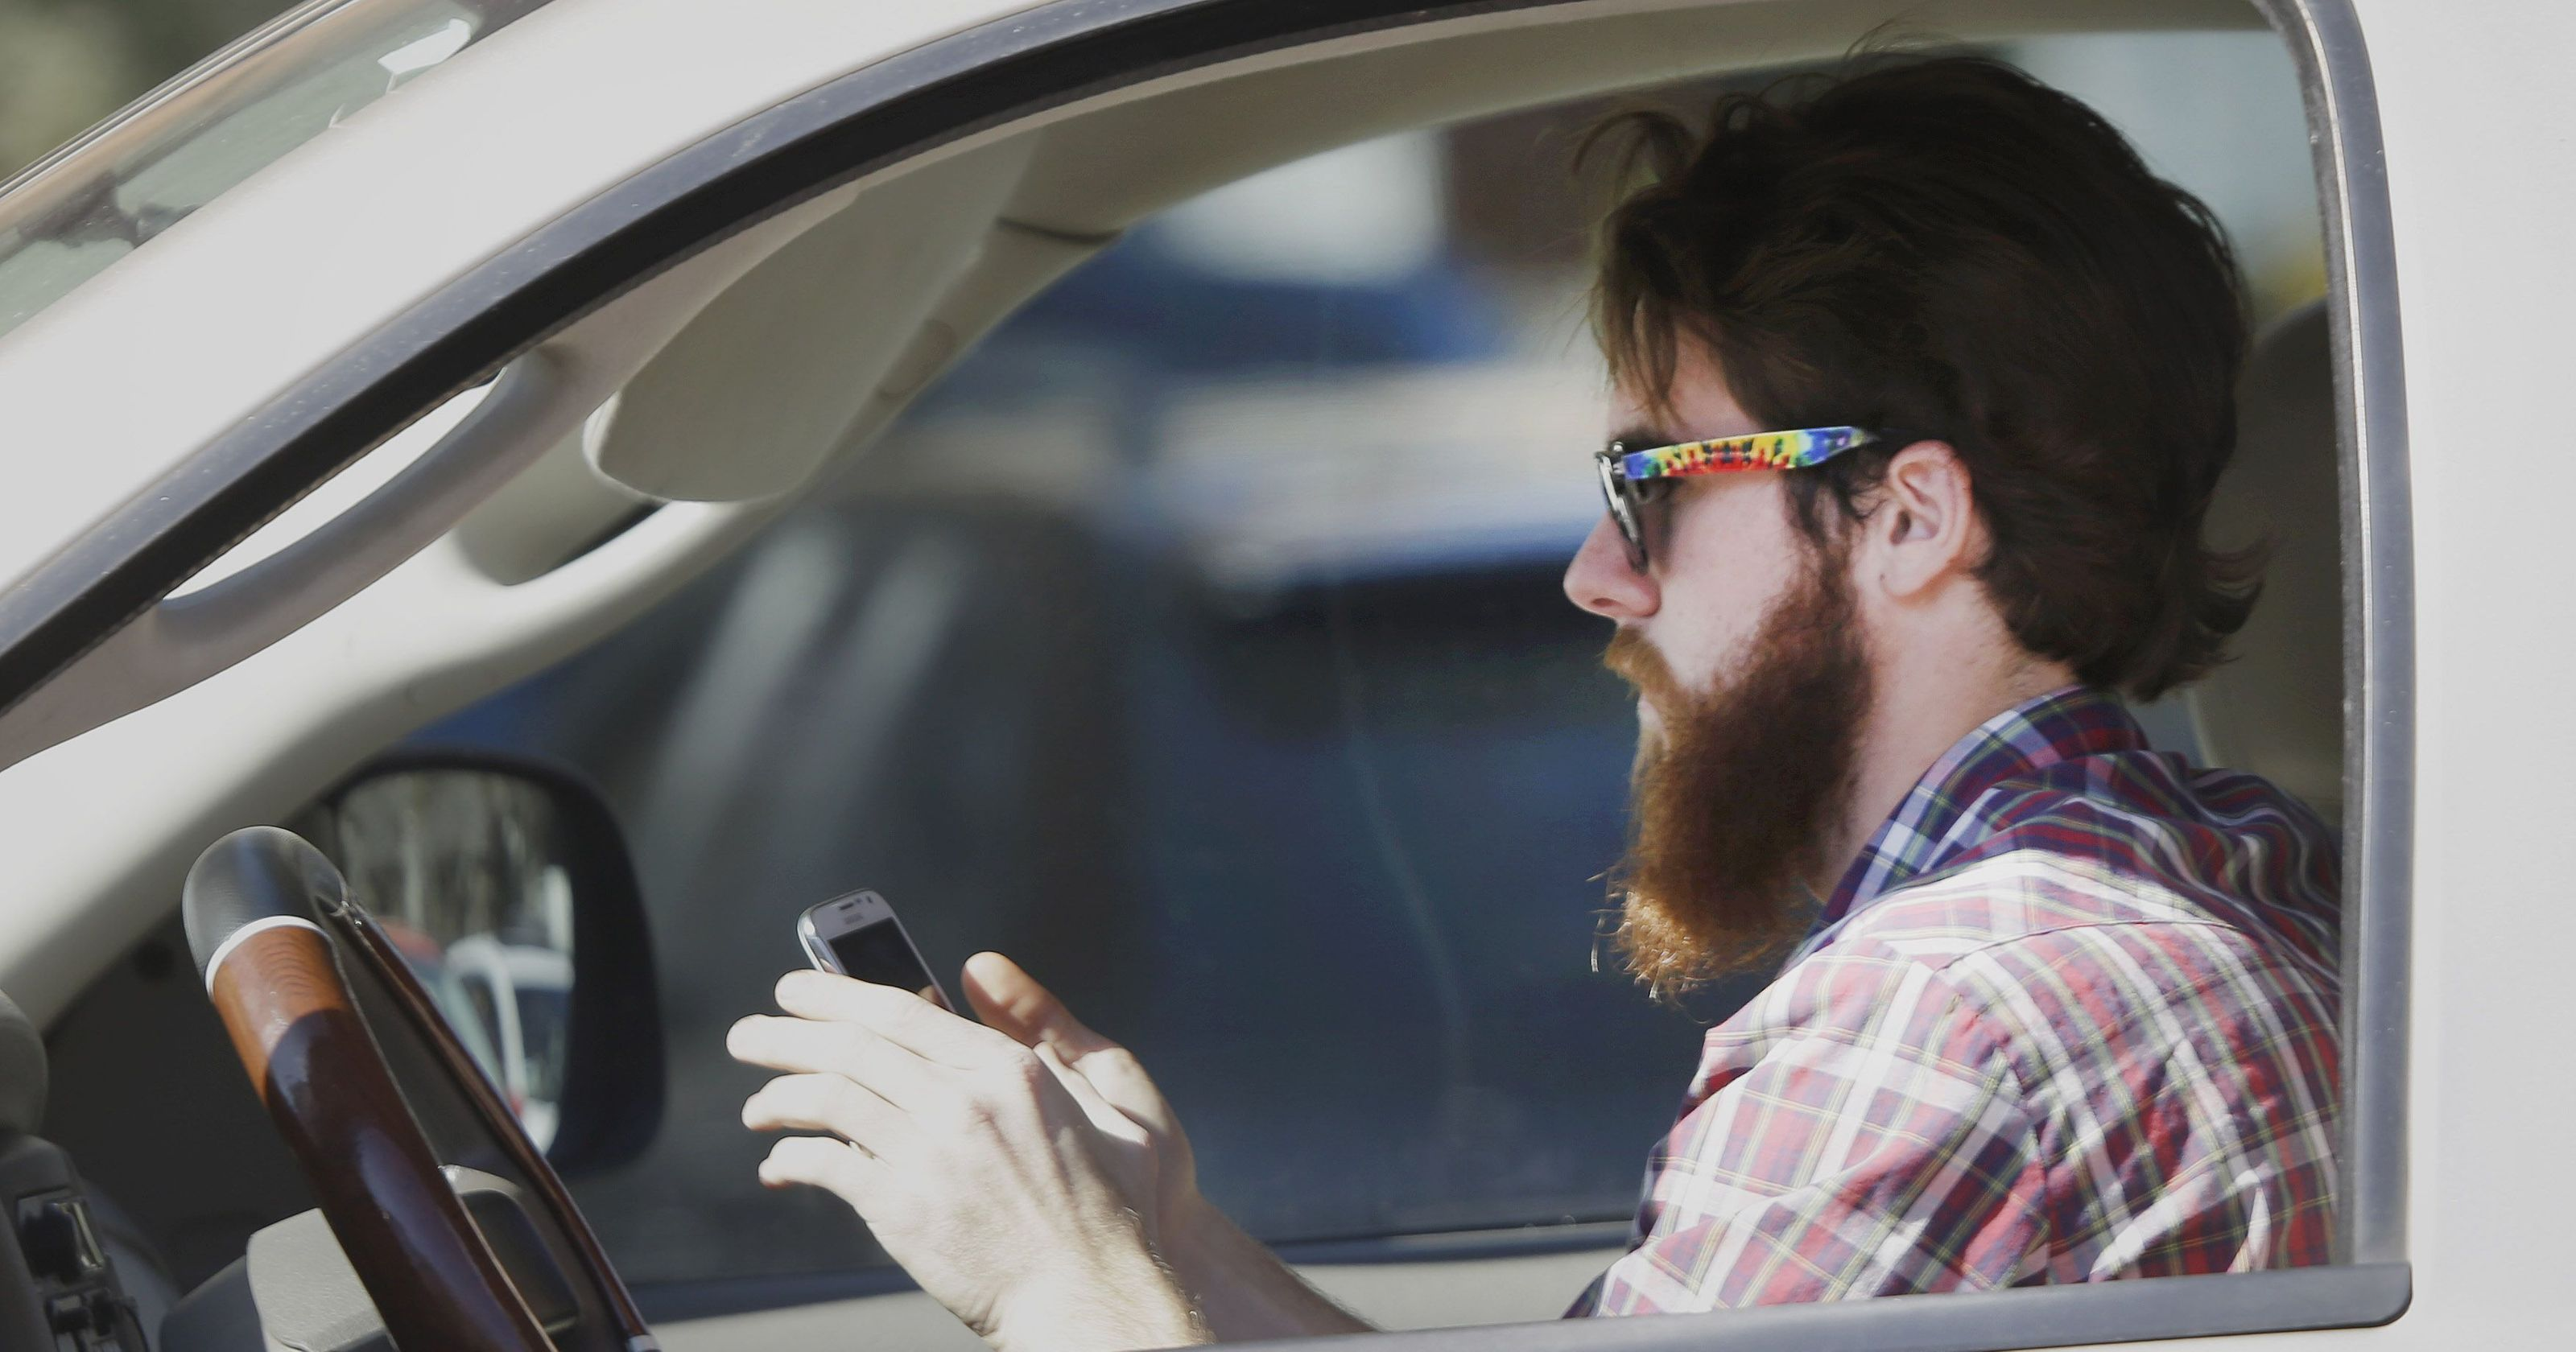 Risky phone use while driving is soaring and it's killing Americans, IIHS study finds